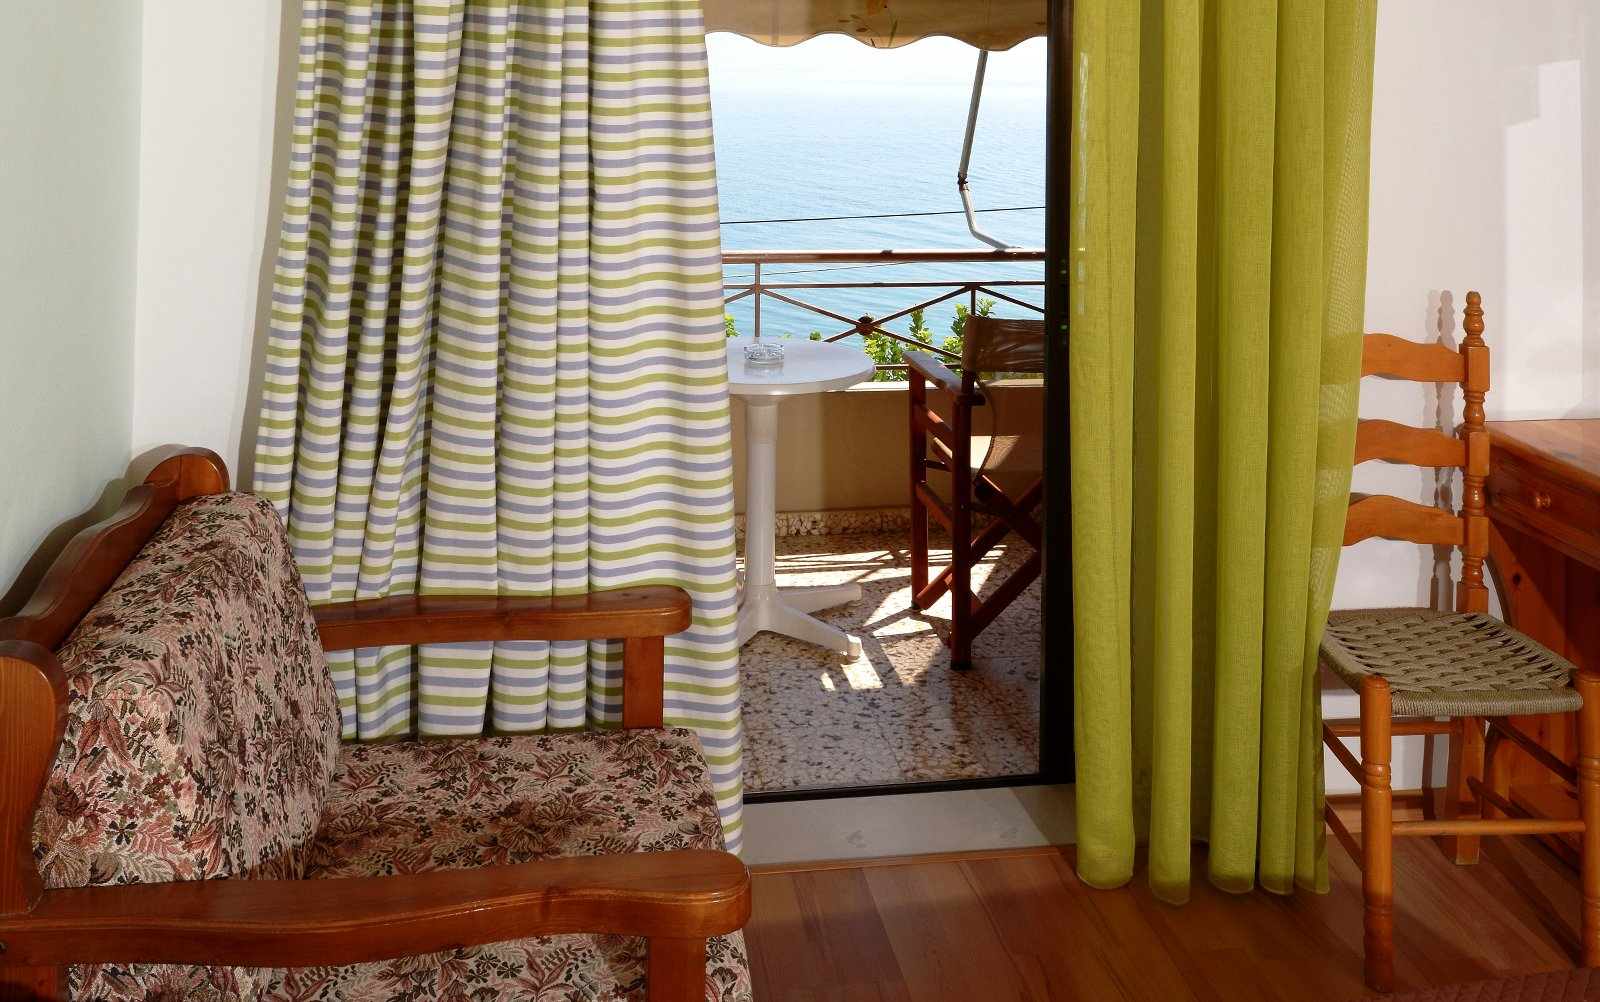 Pharos Rooms - Ilia Edipsos Evia Island Greece